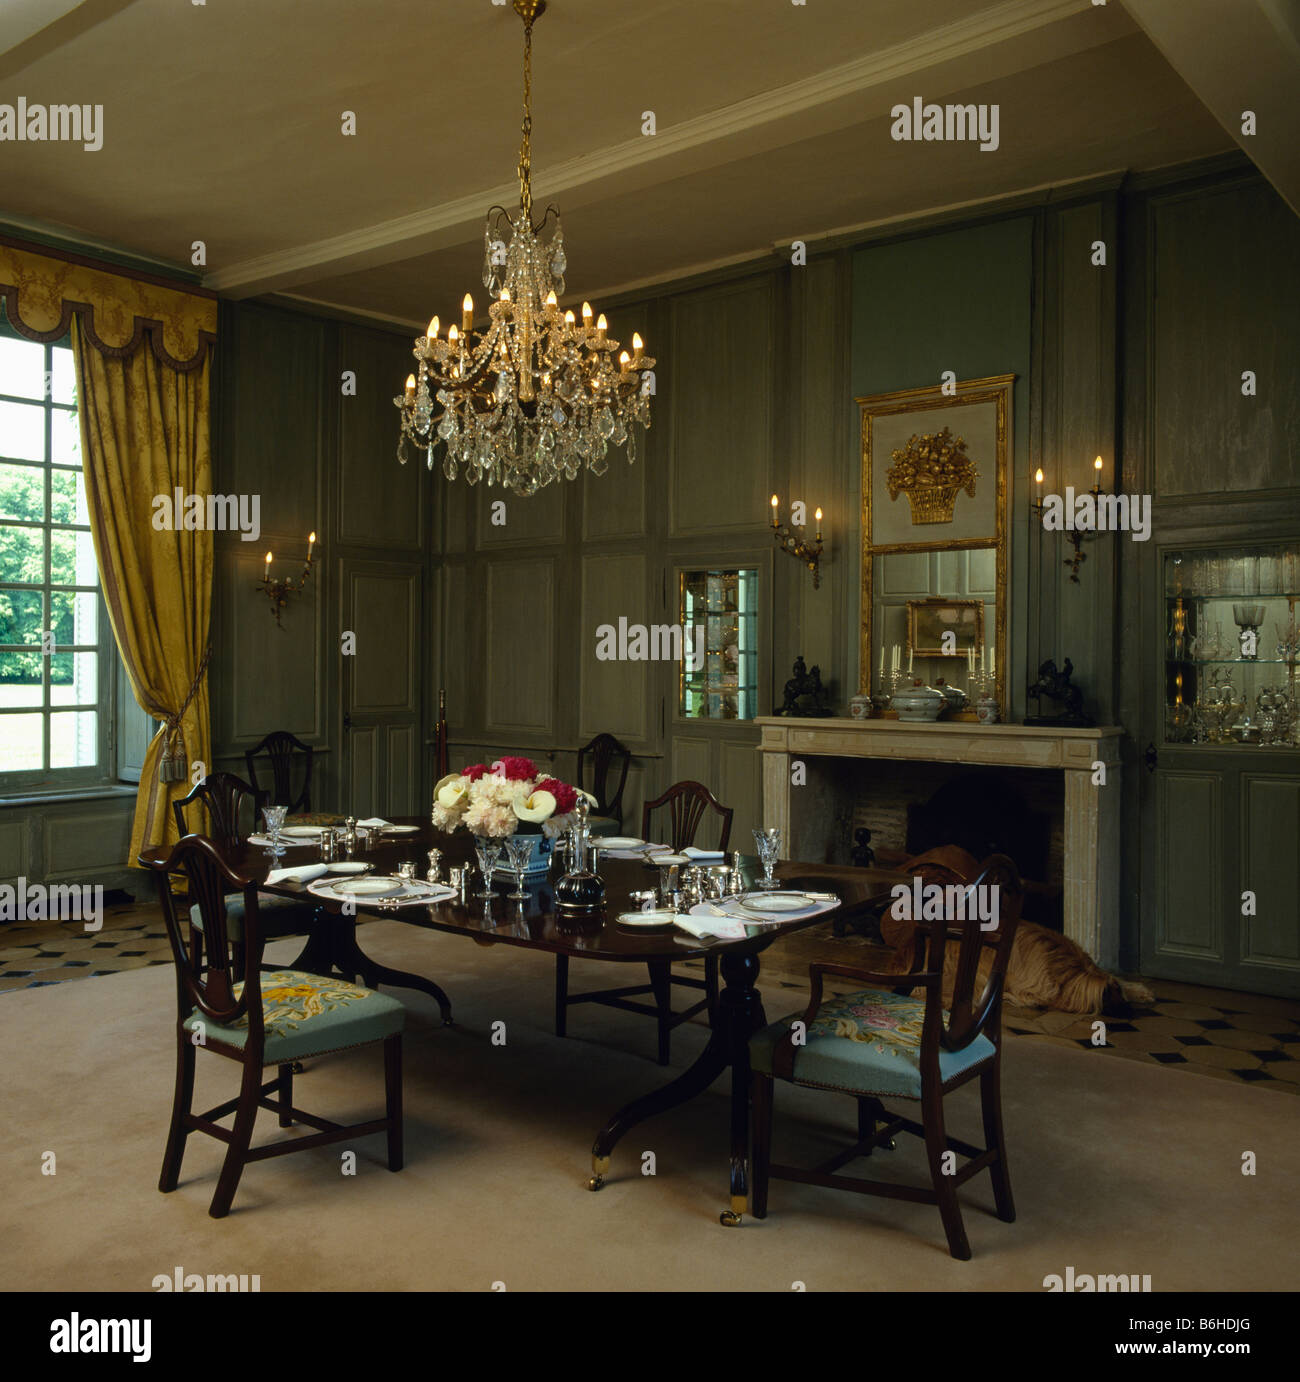 Antique Glass Chandelier In Panelled Green Country Dining Room With Antique  Furniture